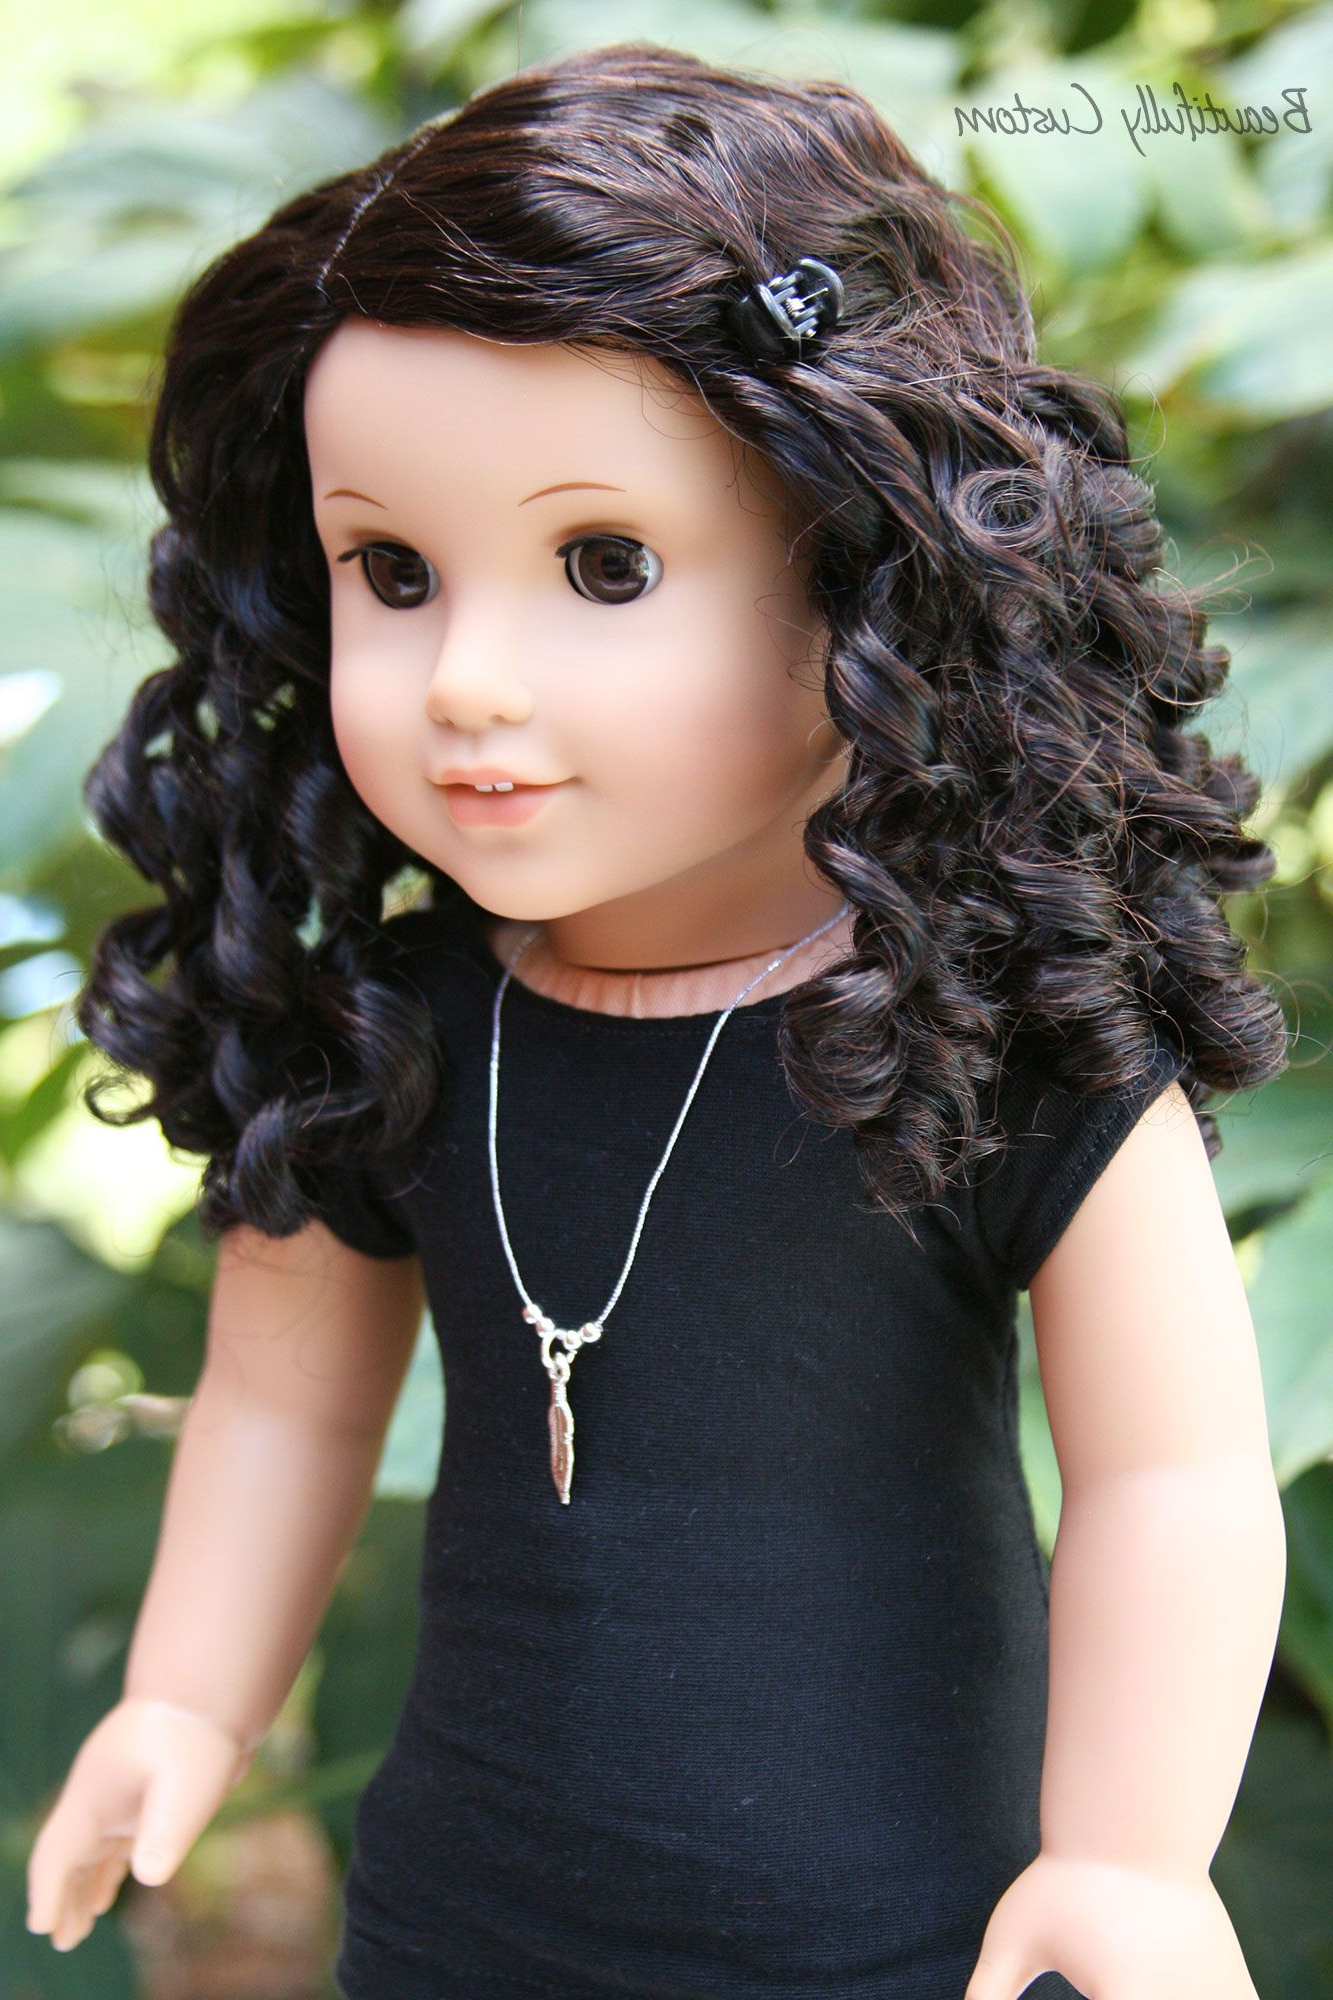 Find Out Full Gallery Of Amazing American Girl Doll Hairstyles For Intended For Hairstyles For American Girl Dolls With Short Hair (View 24 of 25)